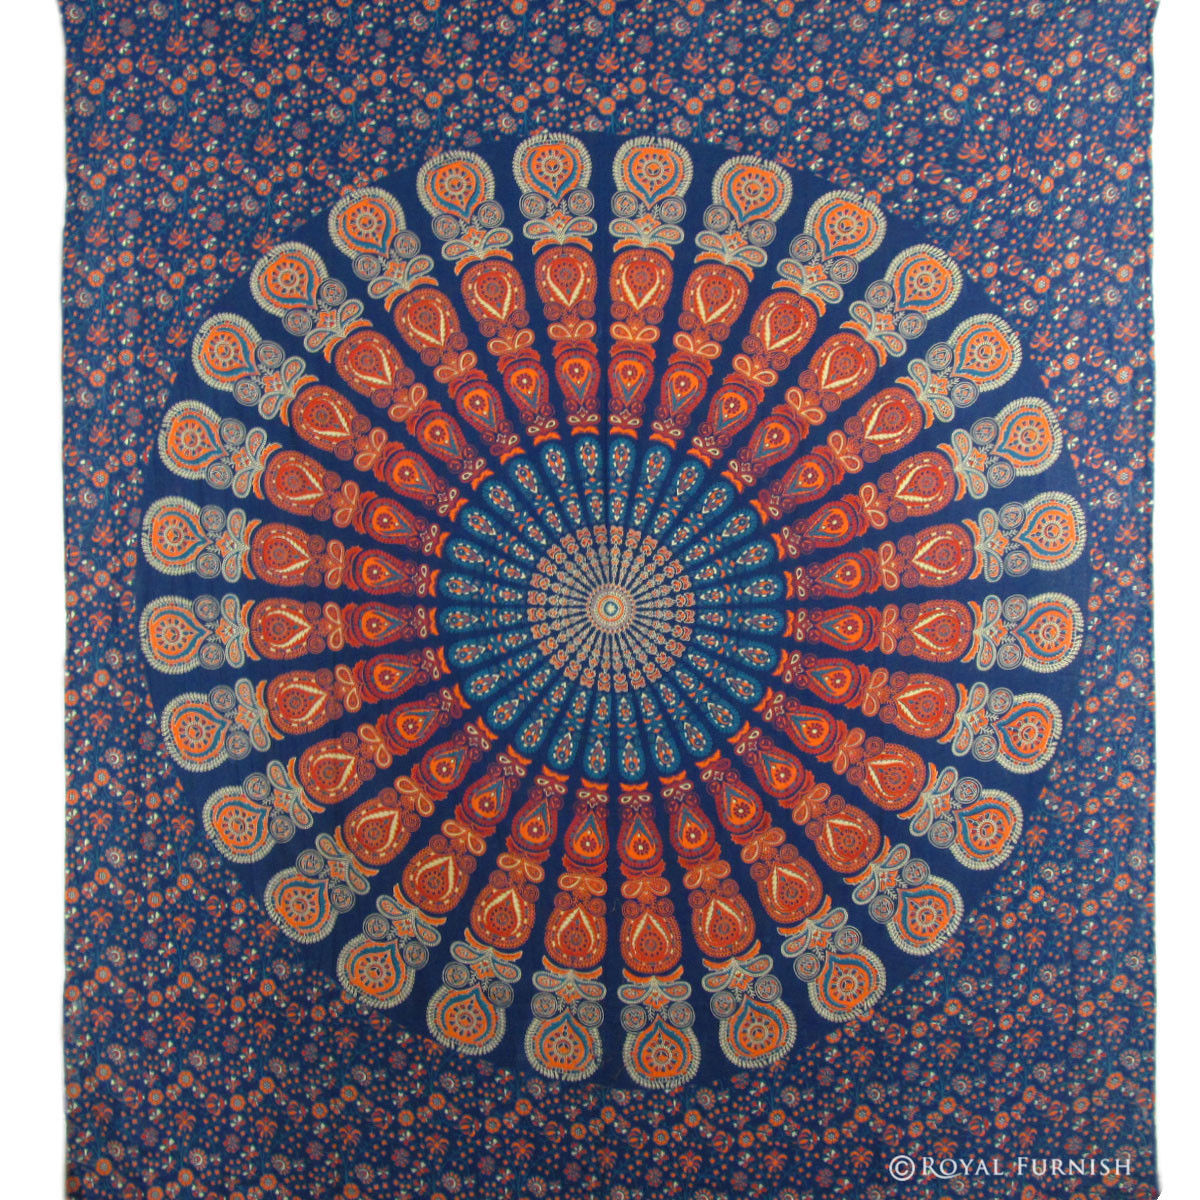 Blue indian floral mandala dorm room decor hippie tapestry for Room decor ideas tapestry